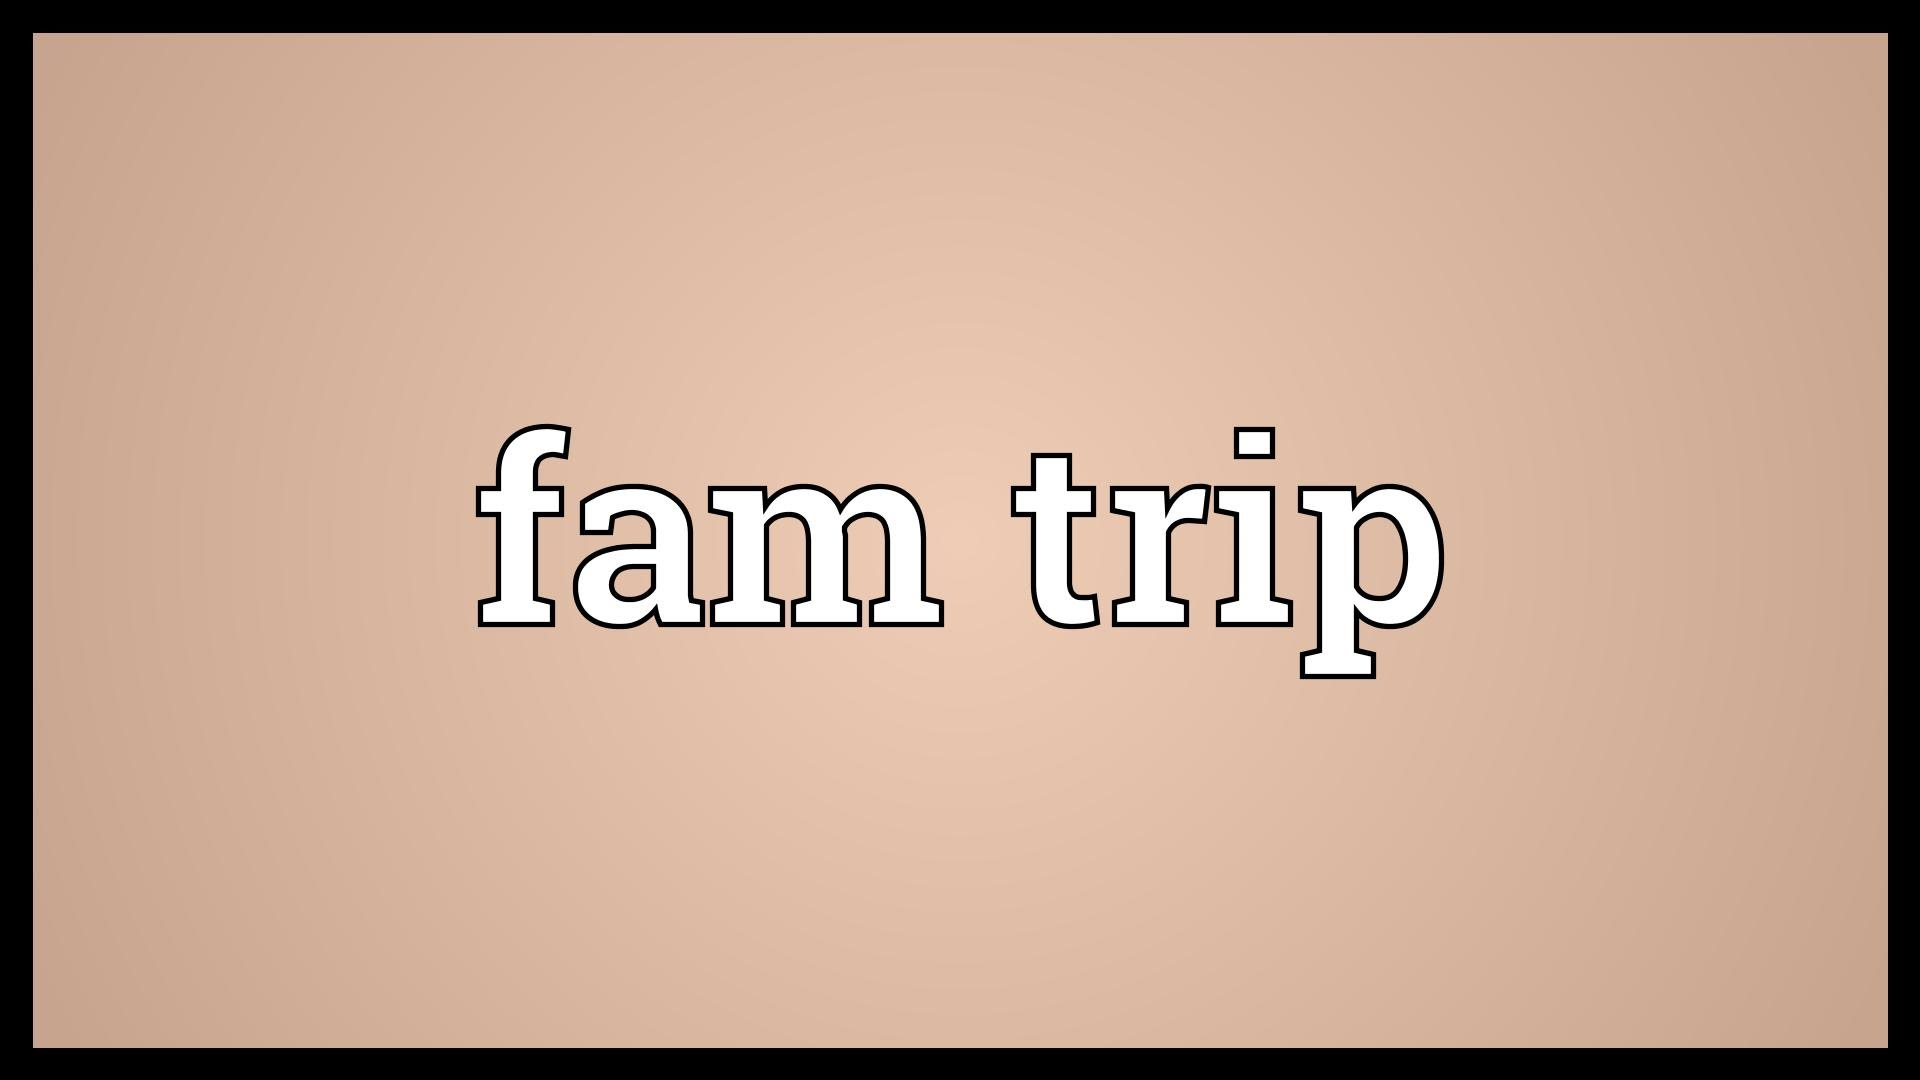 Come fly with me: Planning a FAM trip - Clareville